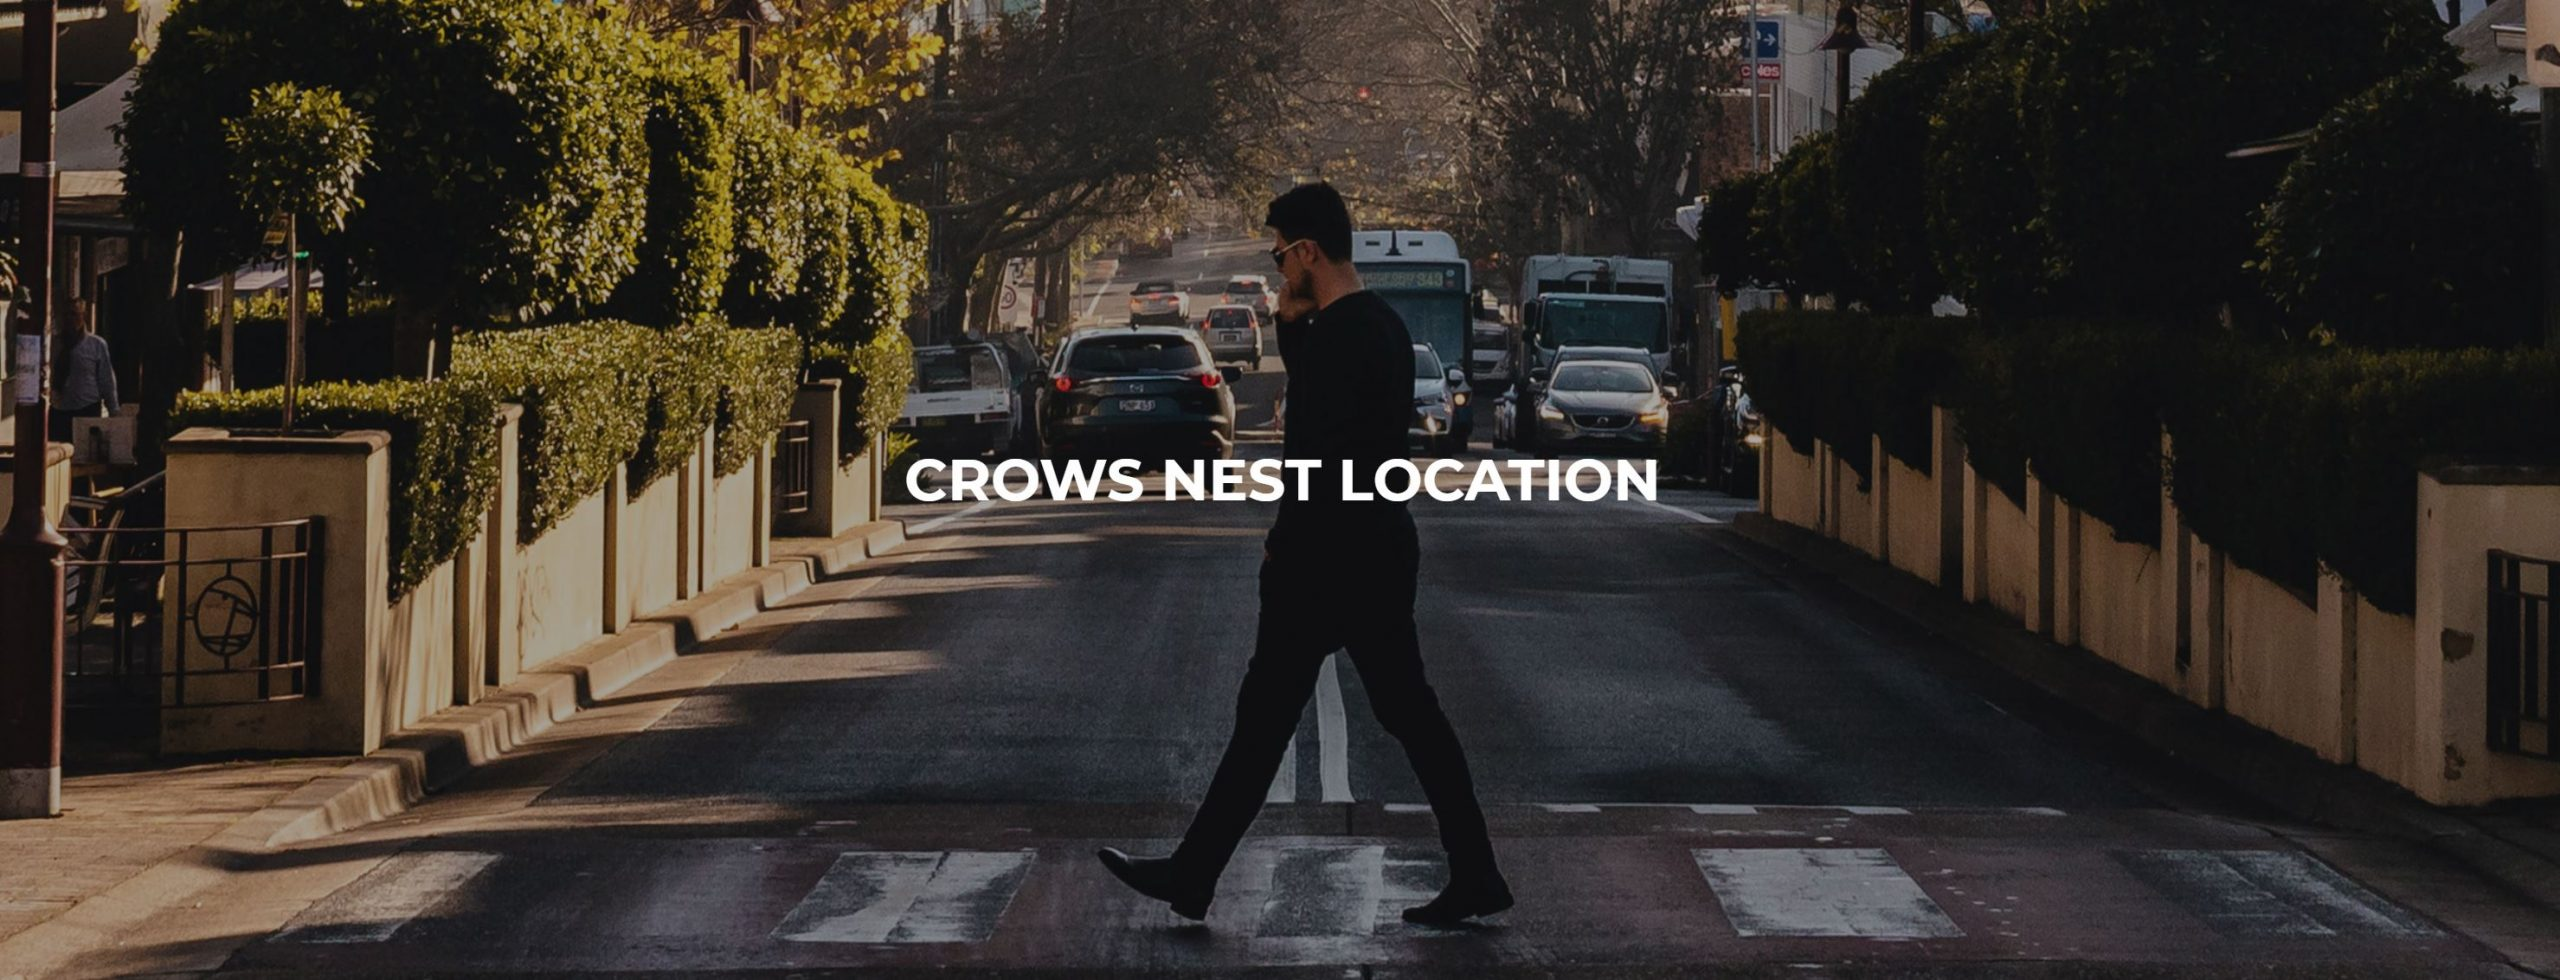 Crossing the road at Crows Nest